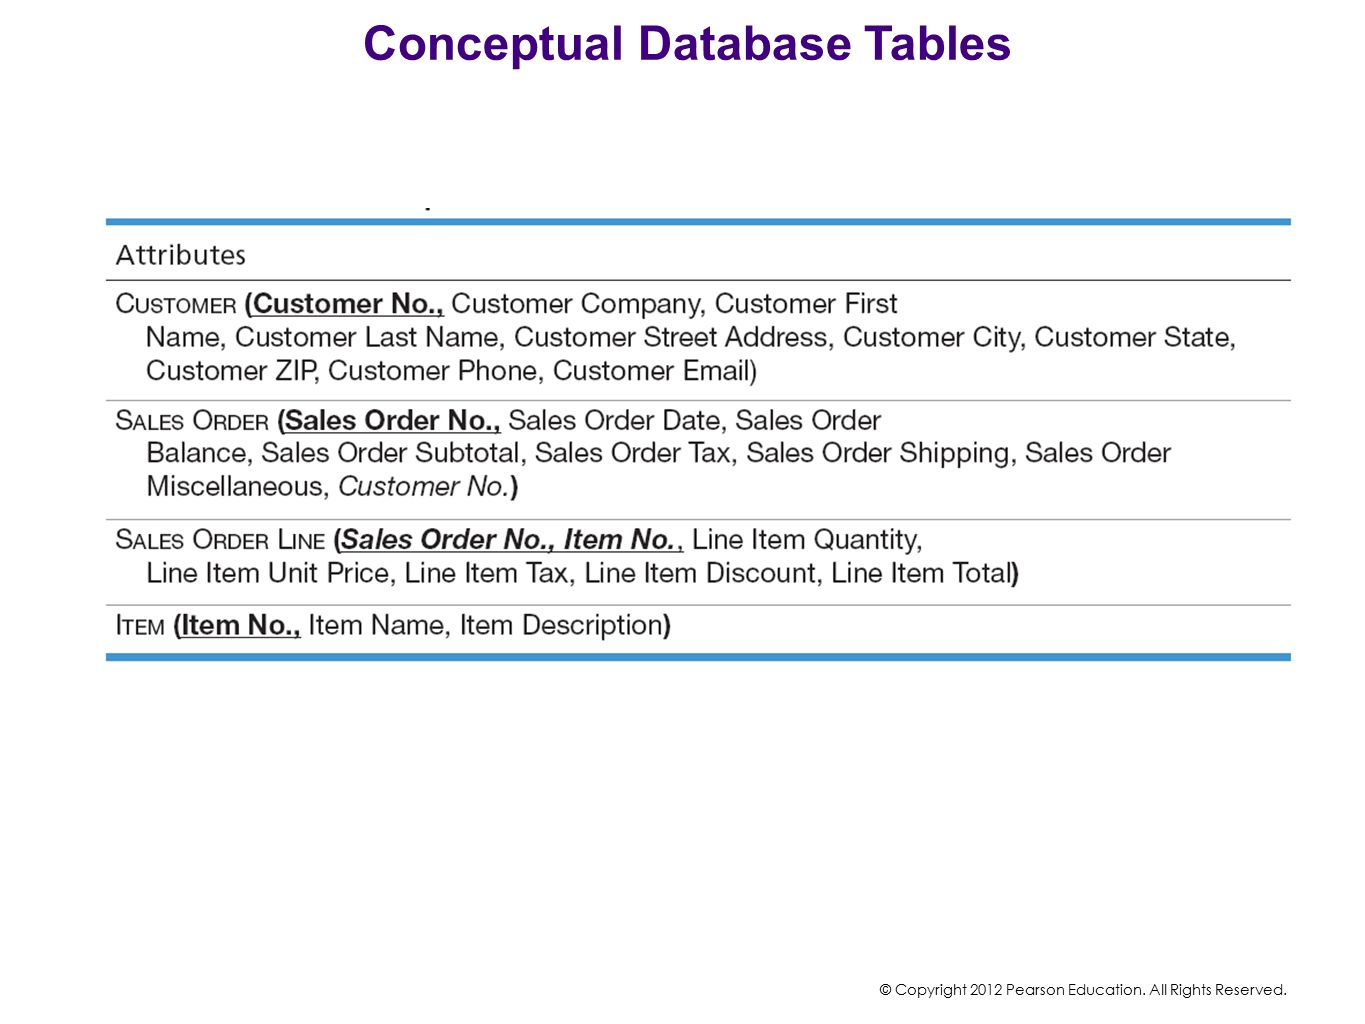 Conceptual Database Tables